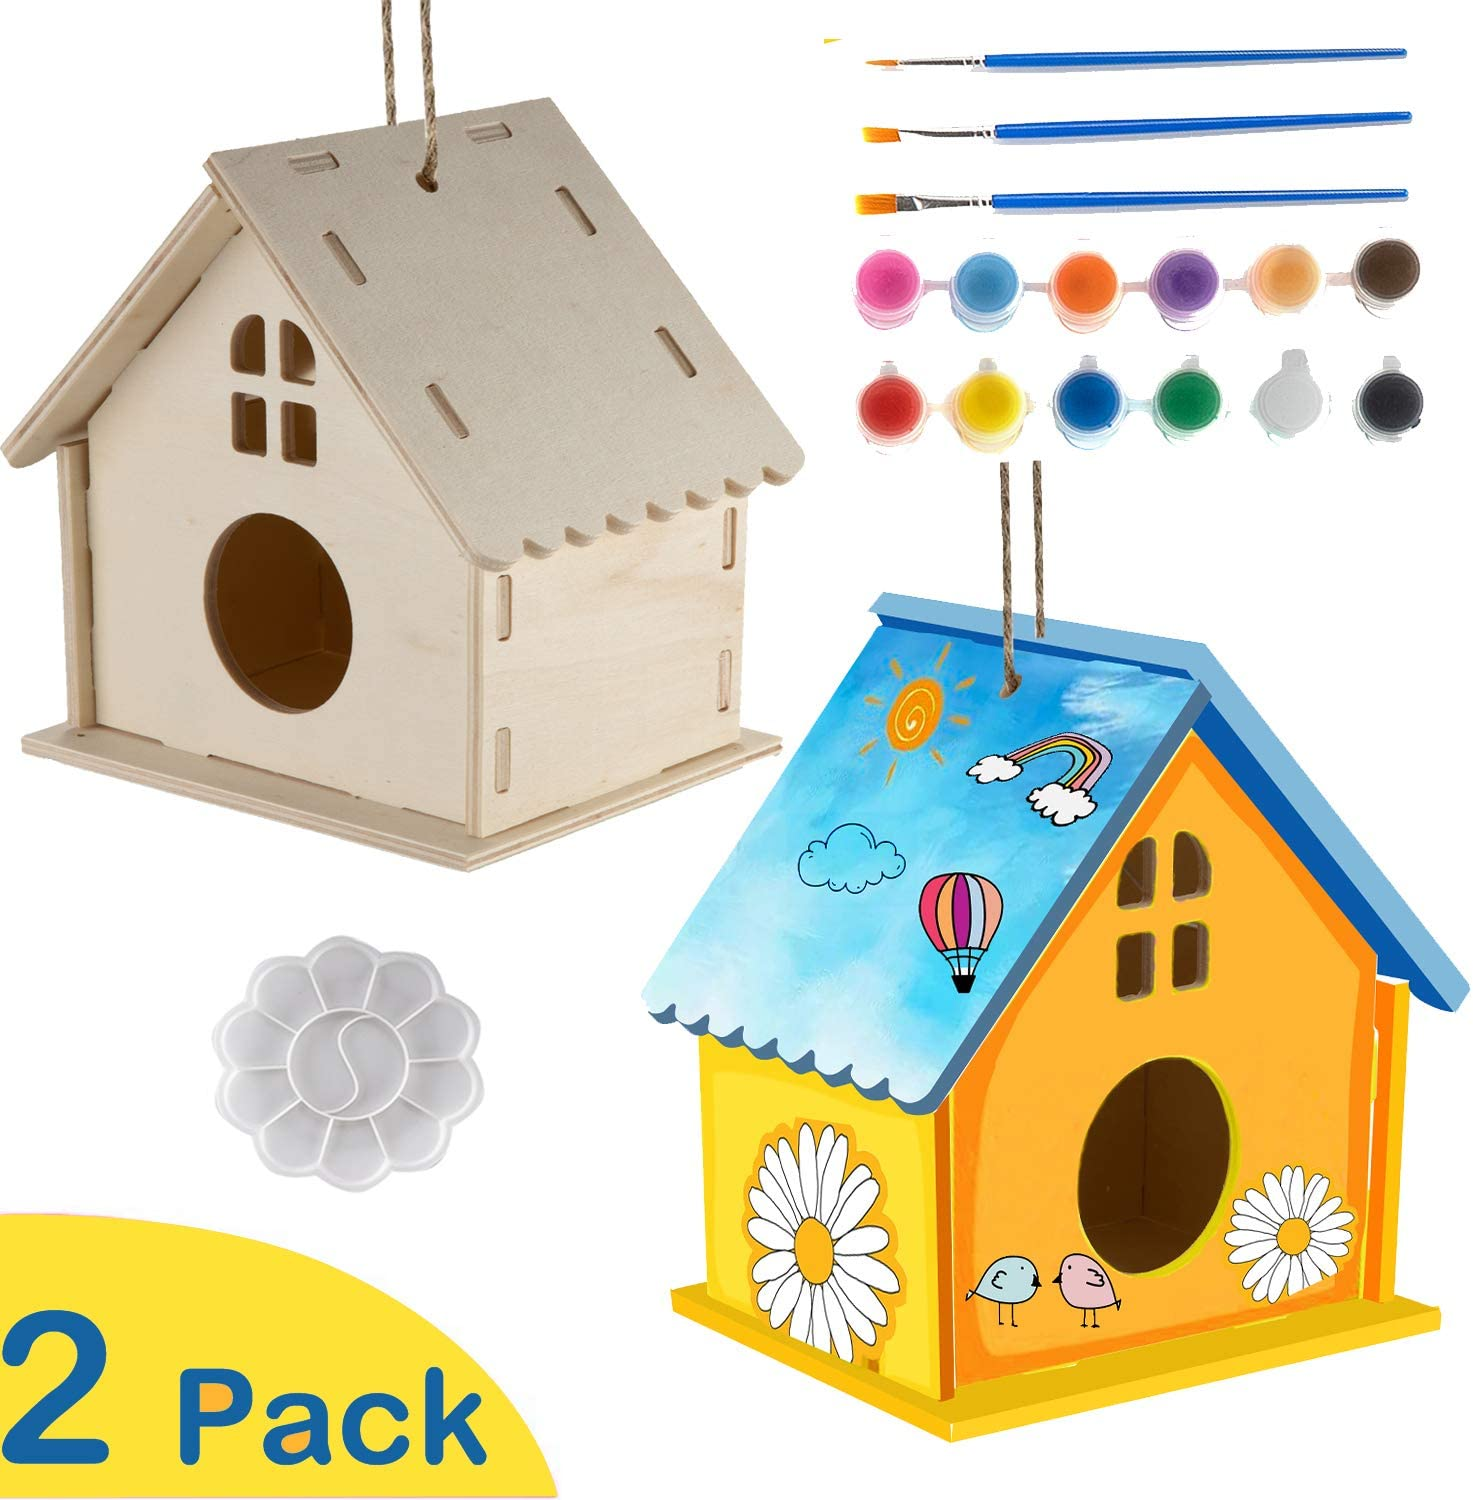 MIXNOVO 2 Pack Bird House Kit Crafts for Kids Build and Paint for Ages 4-8 Girls Boys Toddler Large Size Including 2 Pack Paints /& Brushes/&Plattee Tray,Used for Bird Living and Decor